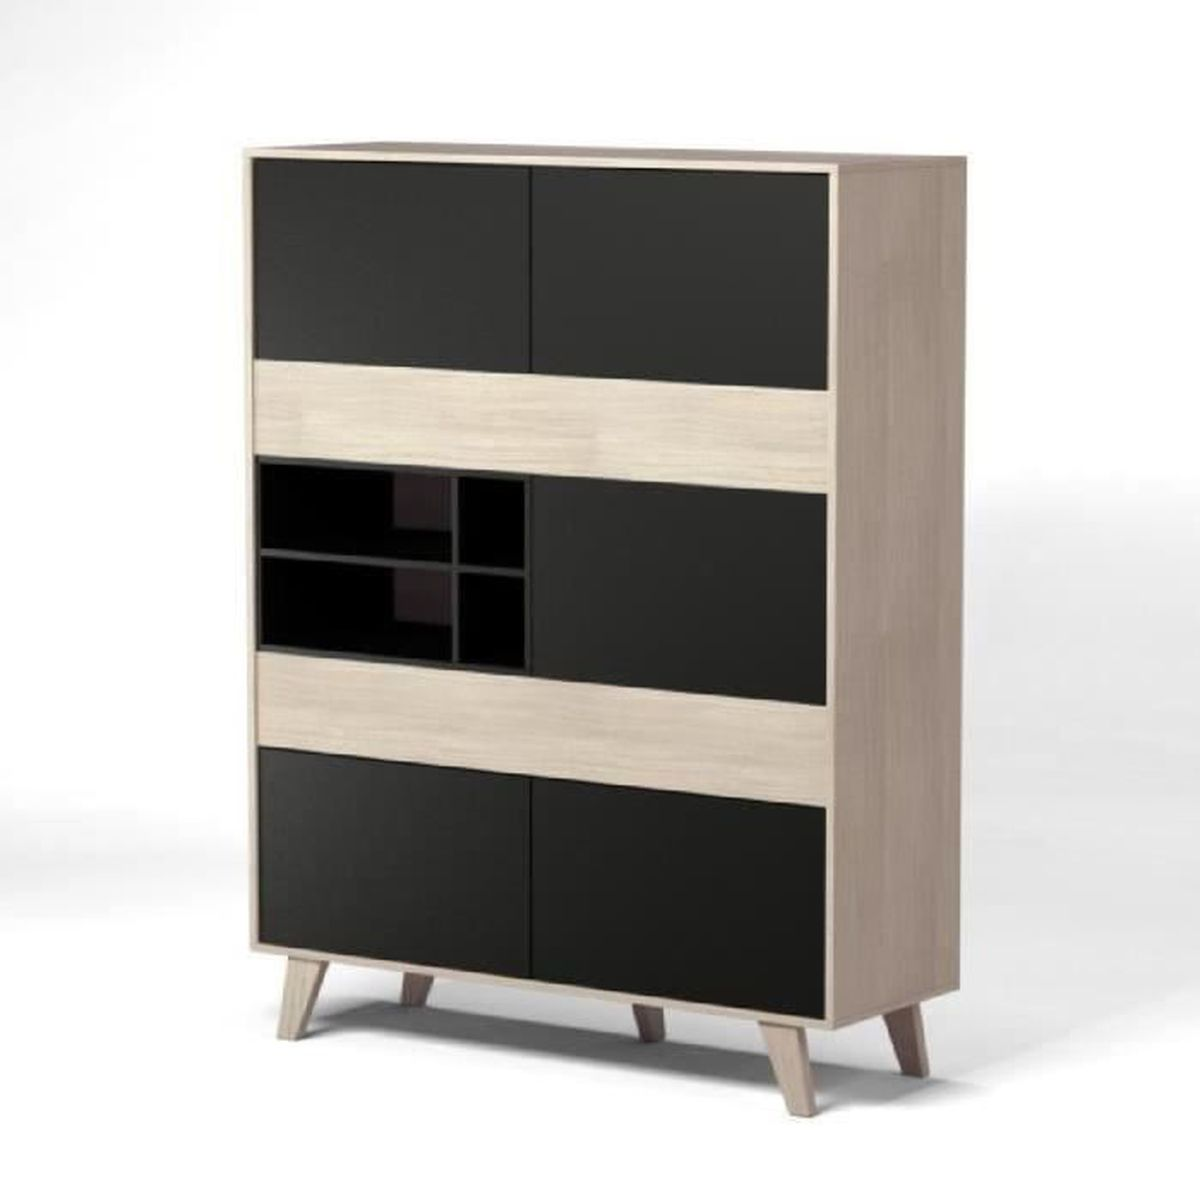 zaiken buffet haut scandinave gris anthracite et d cor ch ne l 156 cm achat vente buffet. Black Bedroom Furniture Sets. Home Design Ideas